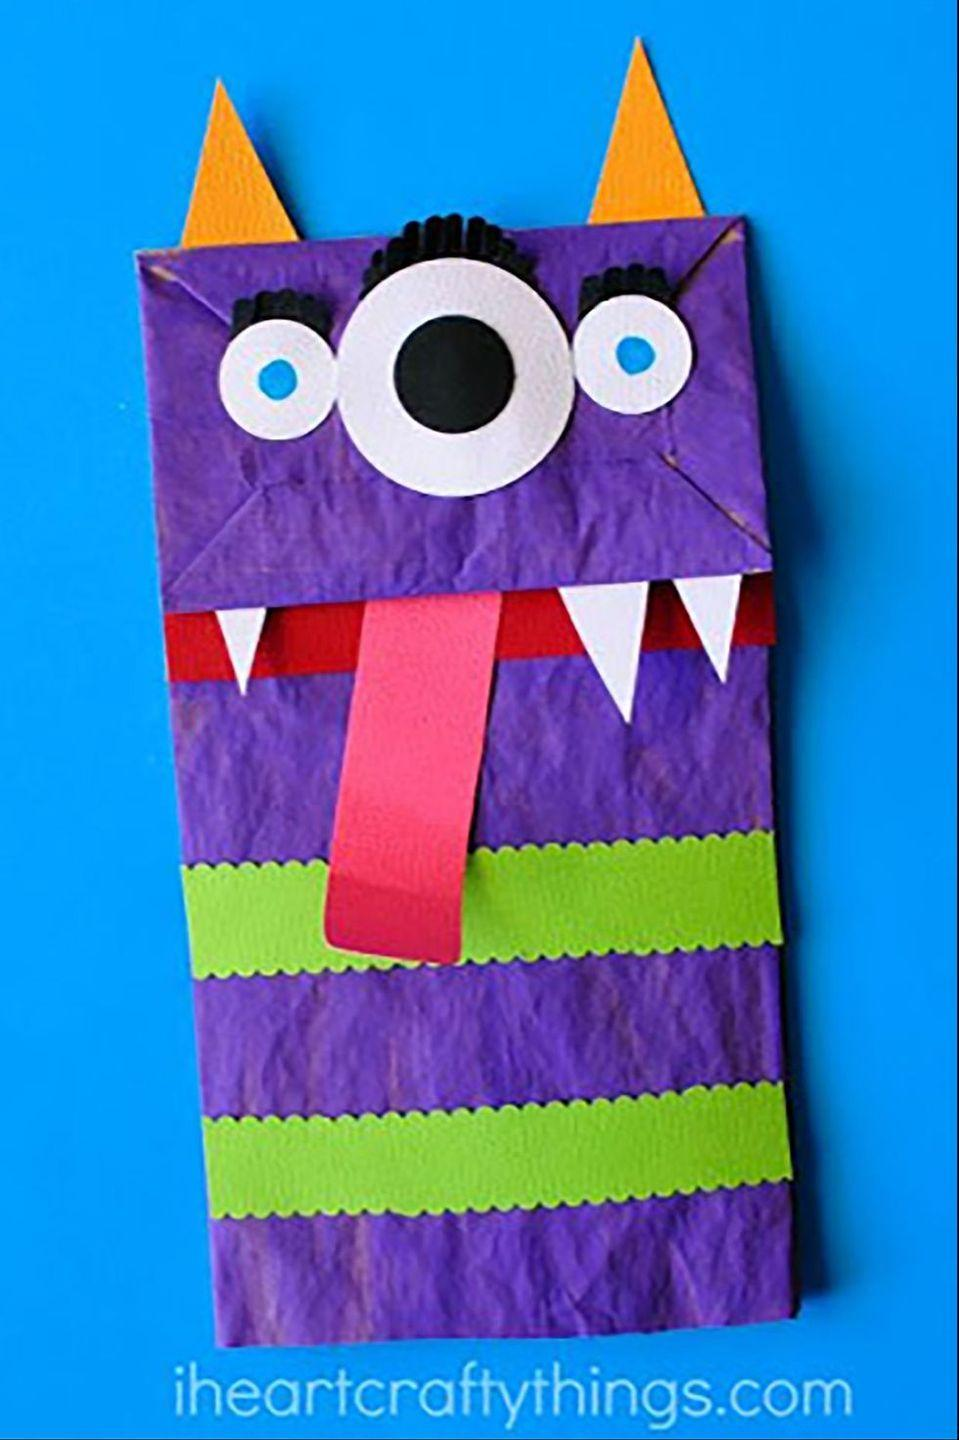 """<p>A perfect option for the youngest children in your family, these comical paper puppets will have them laughing for days. </p><p><strong>Get the tutorial at <a href=""""https://iheartcraftythings.com/paper-bag-monster-puppets.html"""" rel=""""nofollow noopener"""" target=""""_blank"""" data-ylk=""""slk:I Heart Crafty Things"""" class=""""link rapid-noclick-resp"""">I Heart Crafty Things</a>.</strong> </p>"""